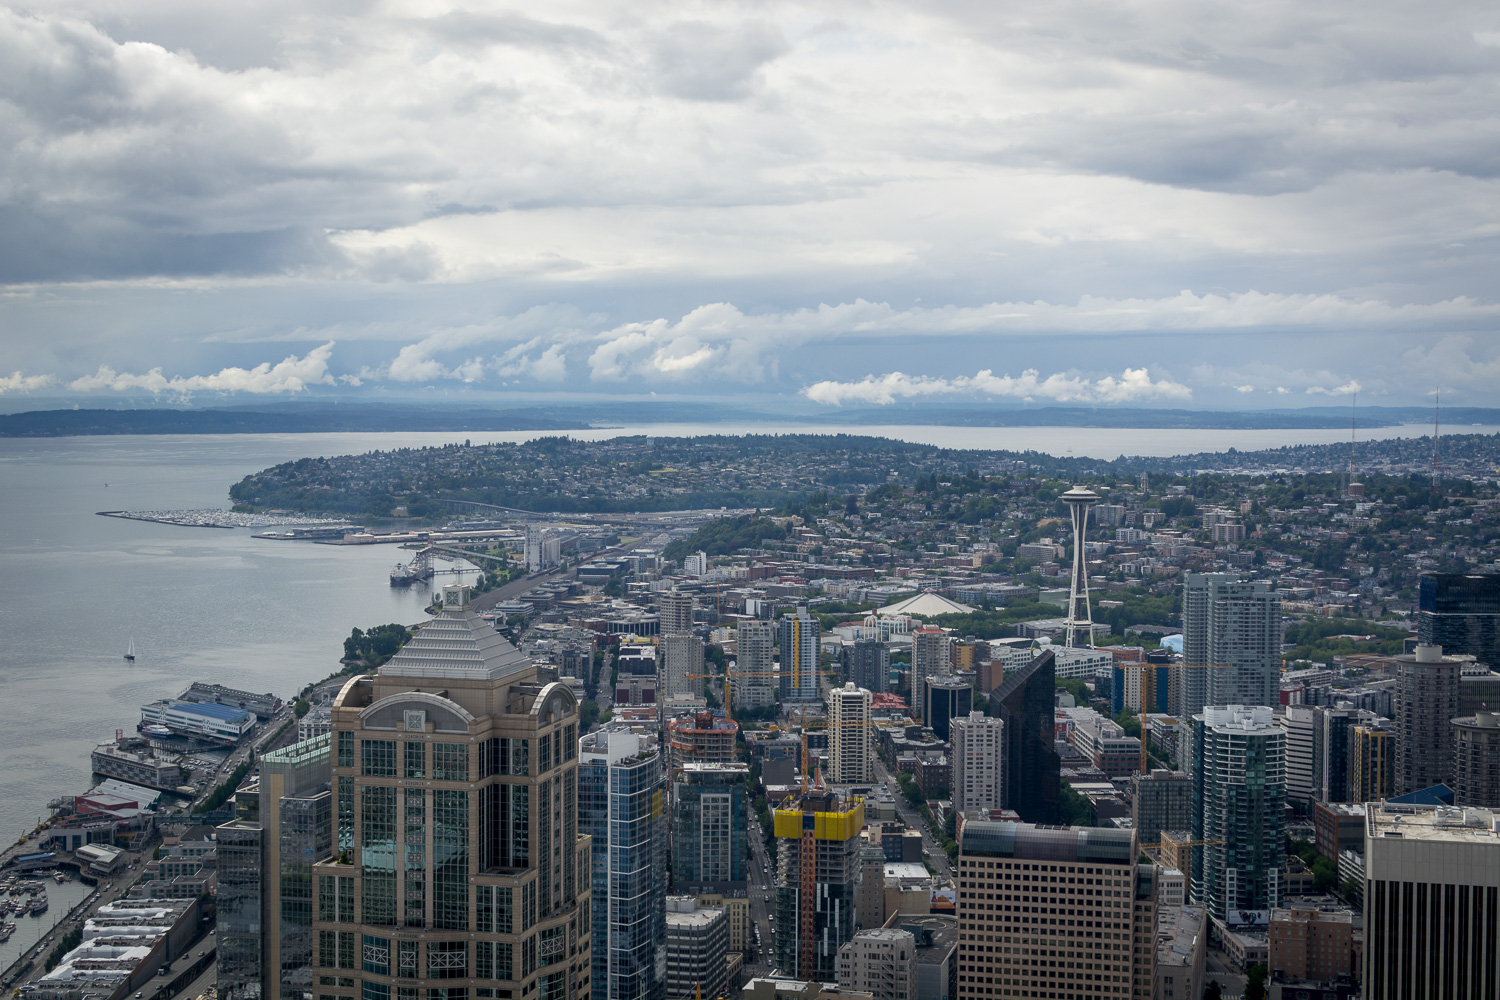 Image: Original image, shot from the Columbia Center skyscraper in downtown Seattle.